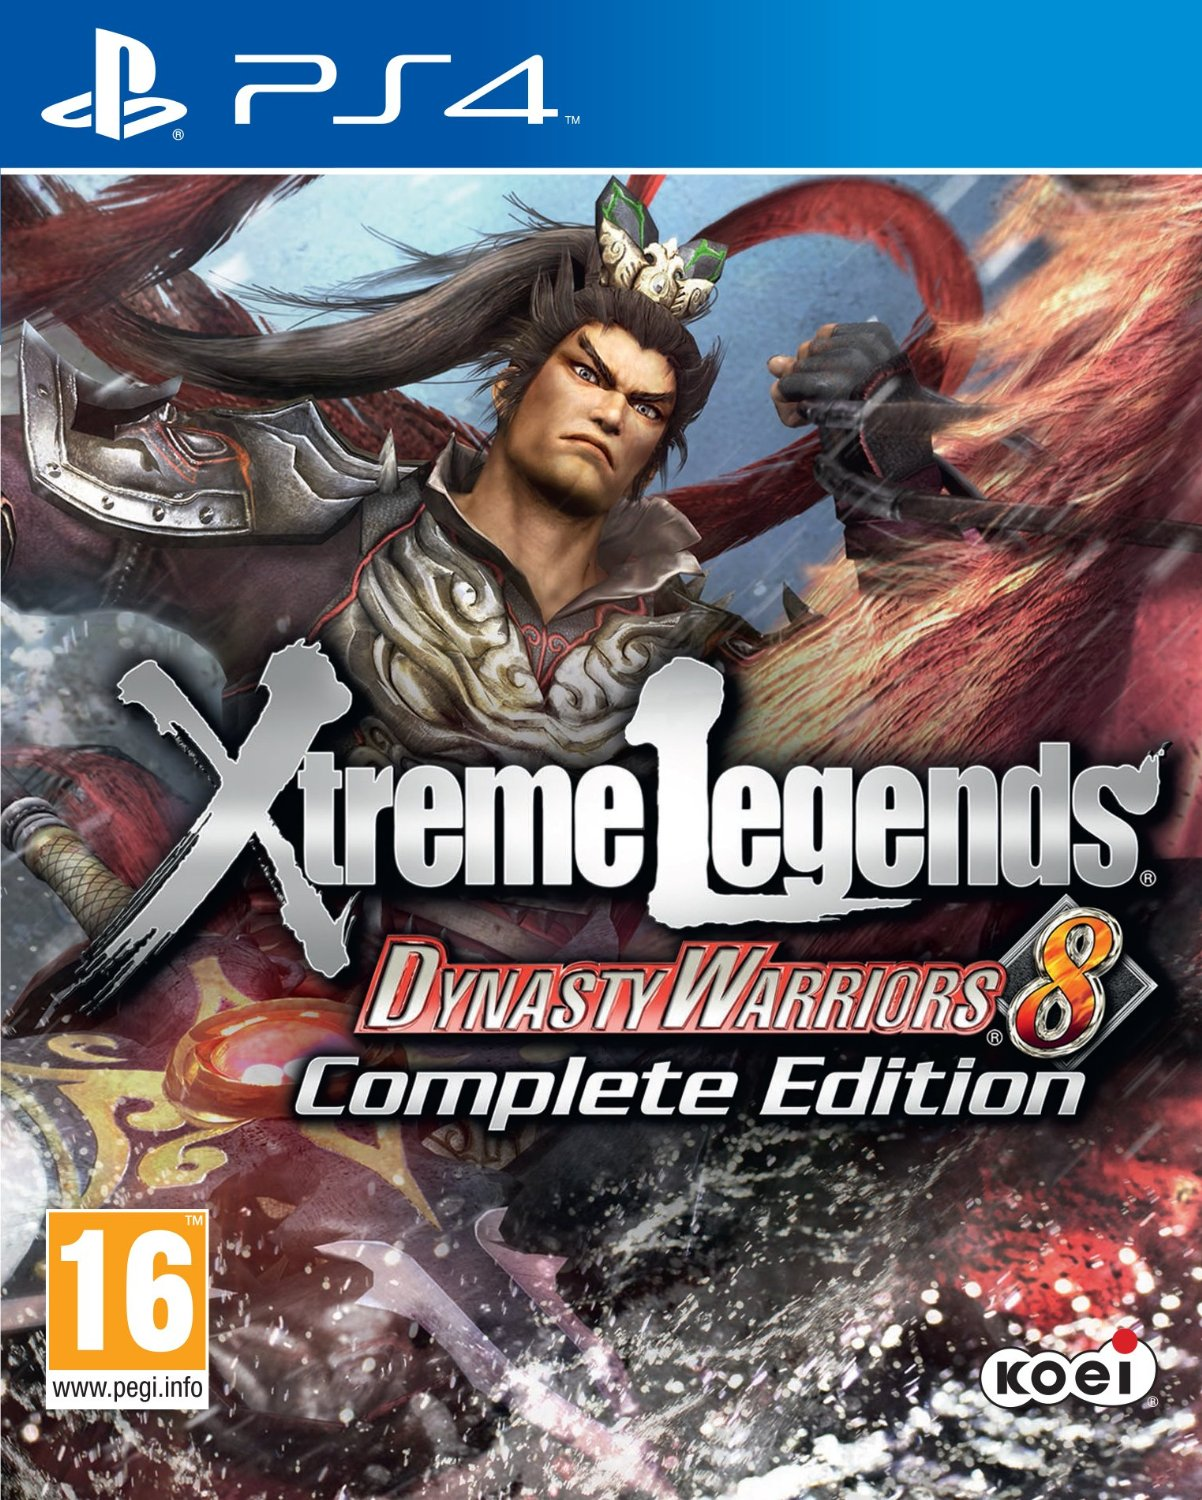 DynastyWarriors8-XtremeLegends PS4 Jaquette 001